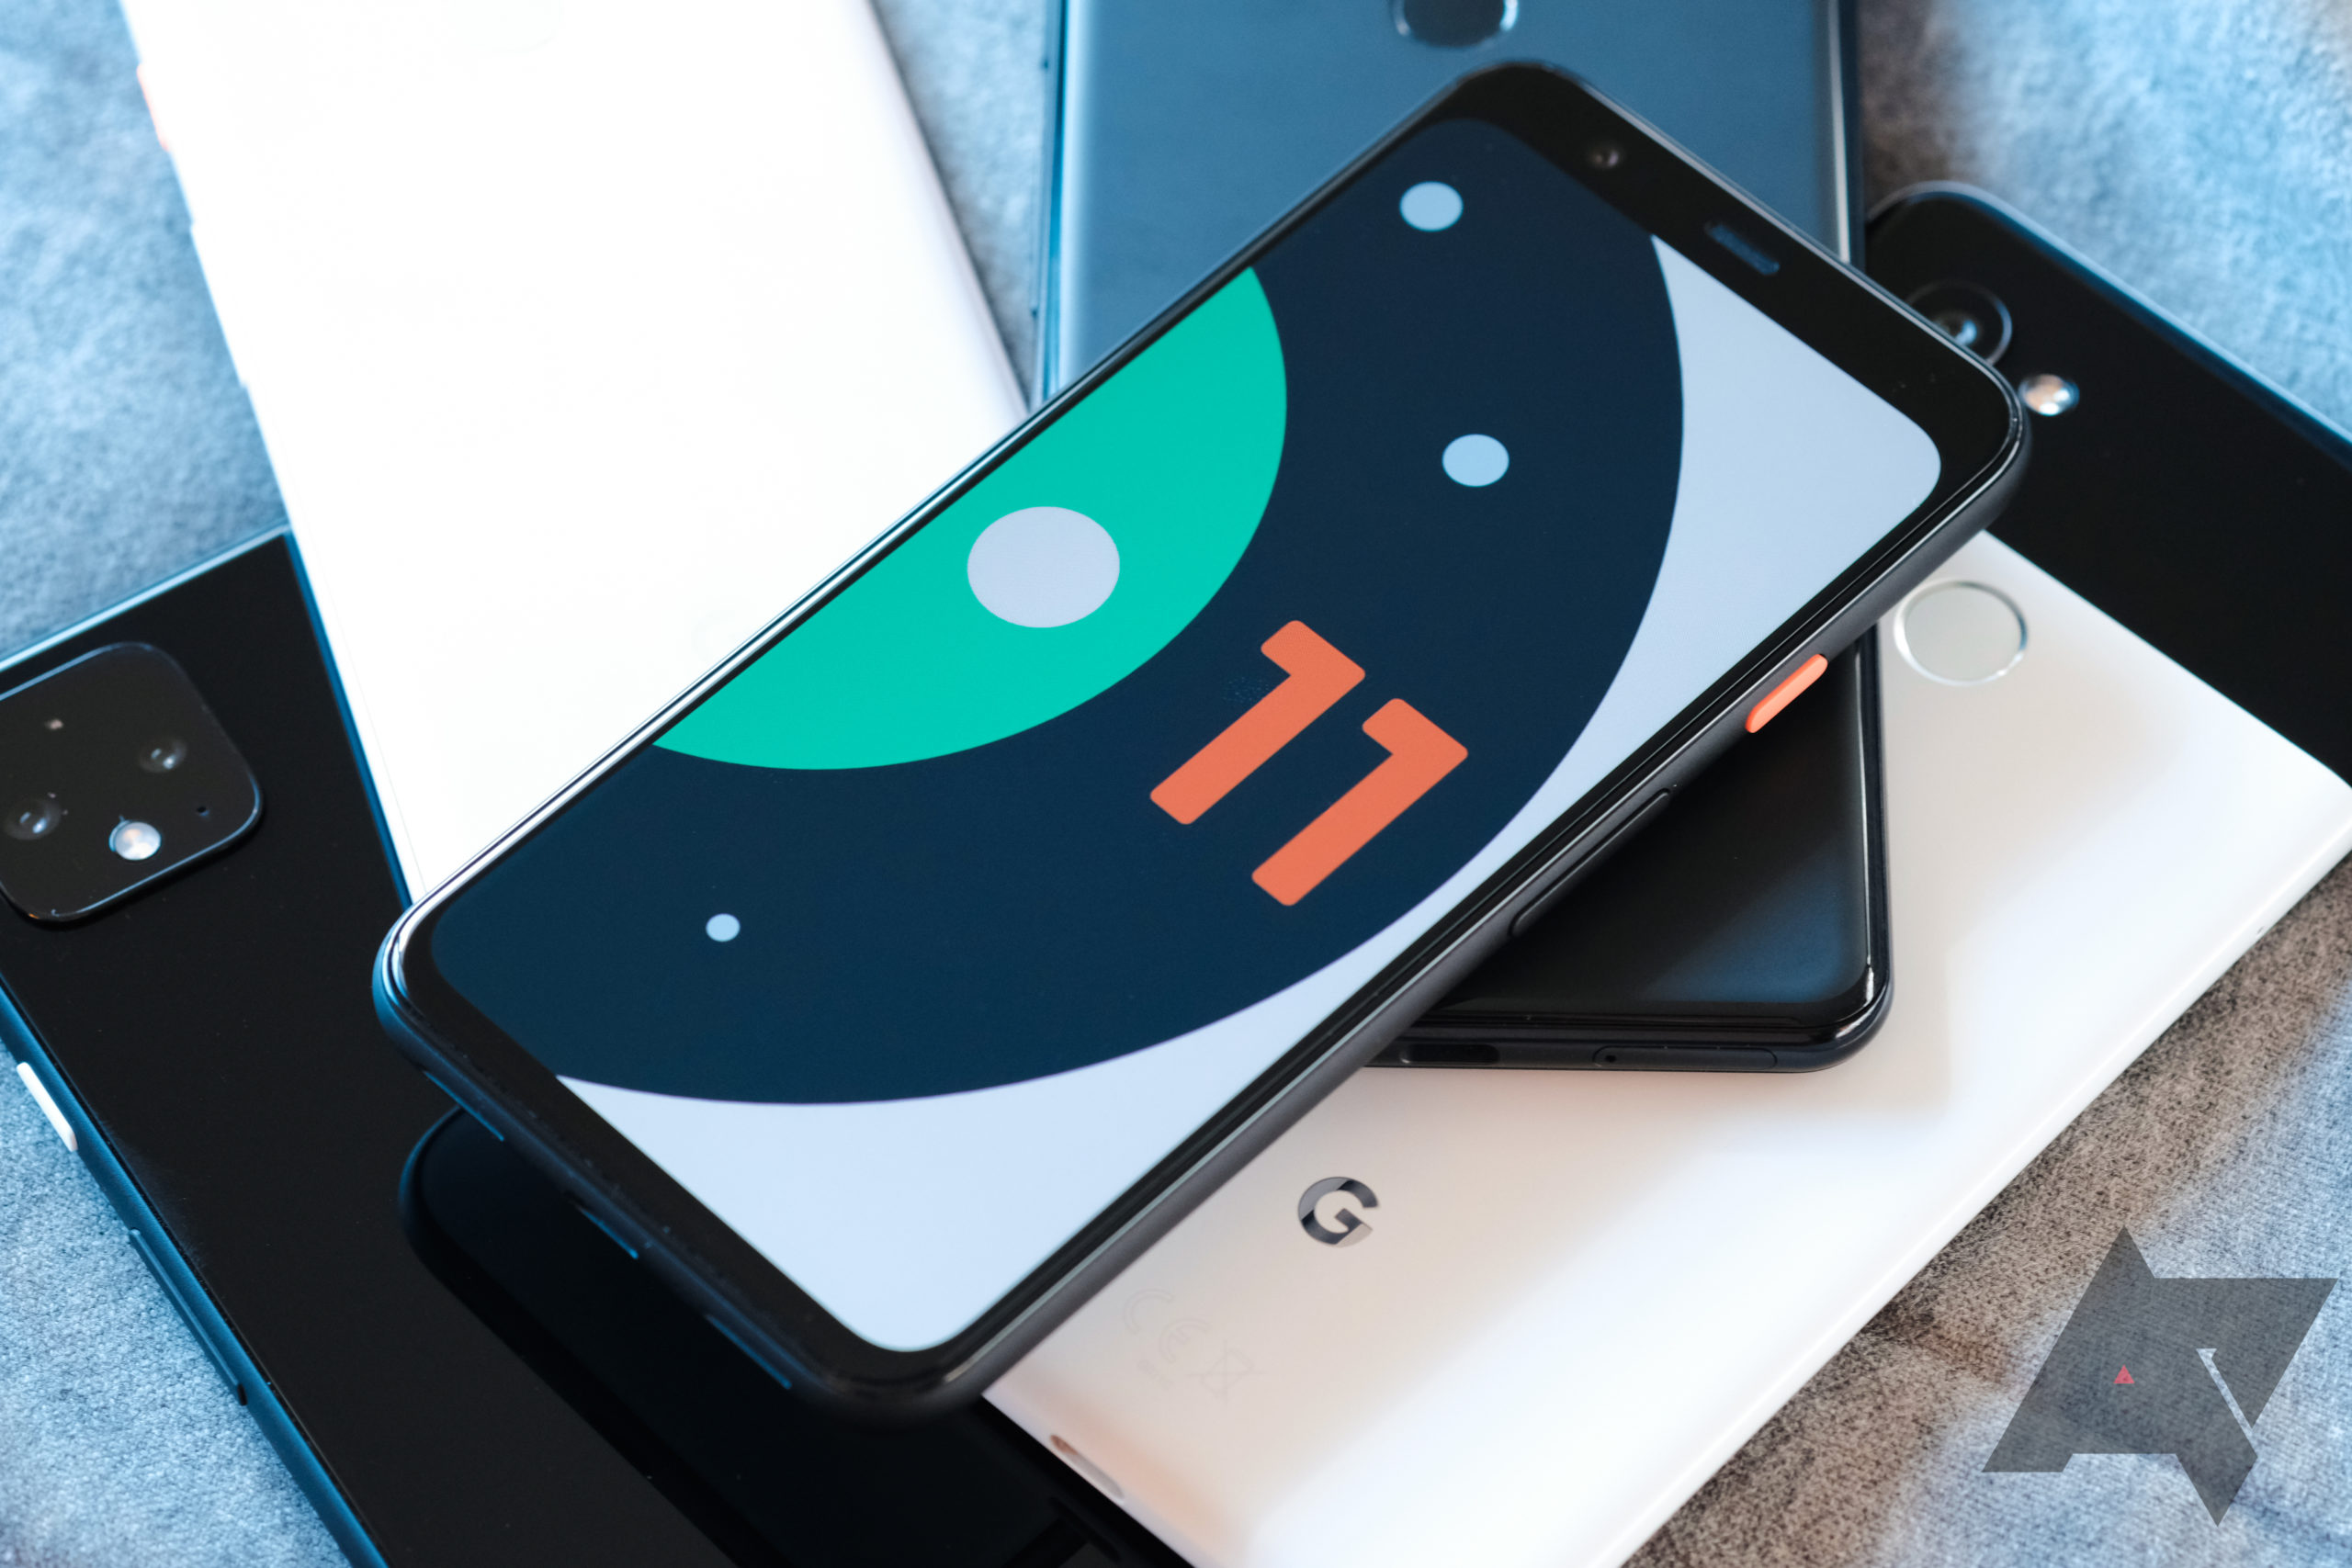 List of smartphones compatible with Android 11